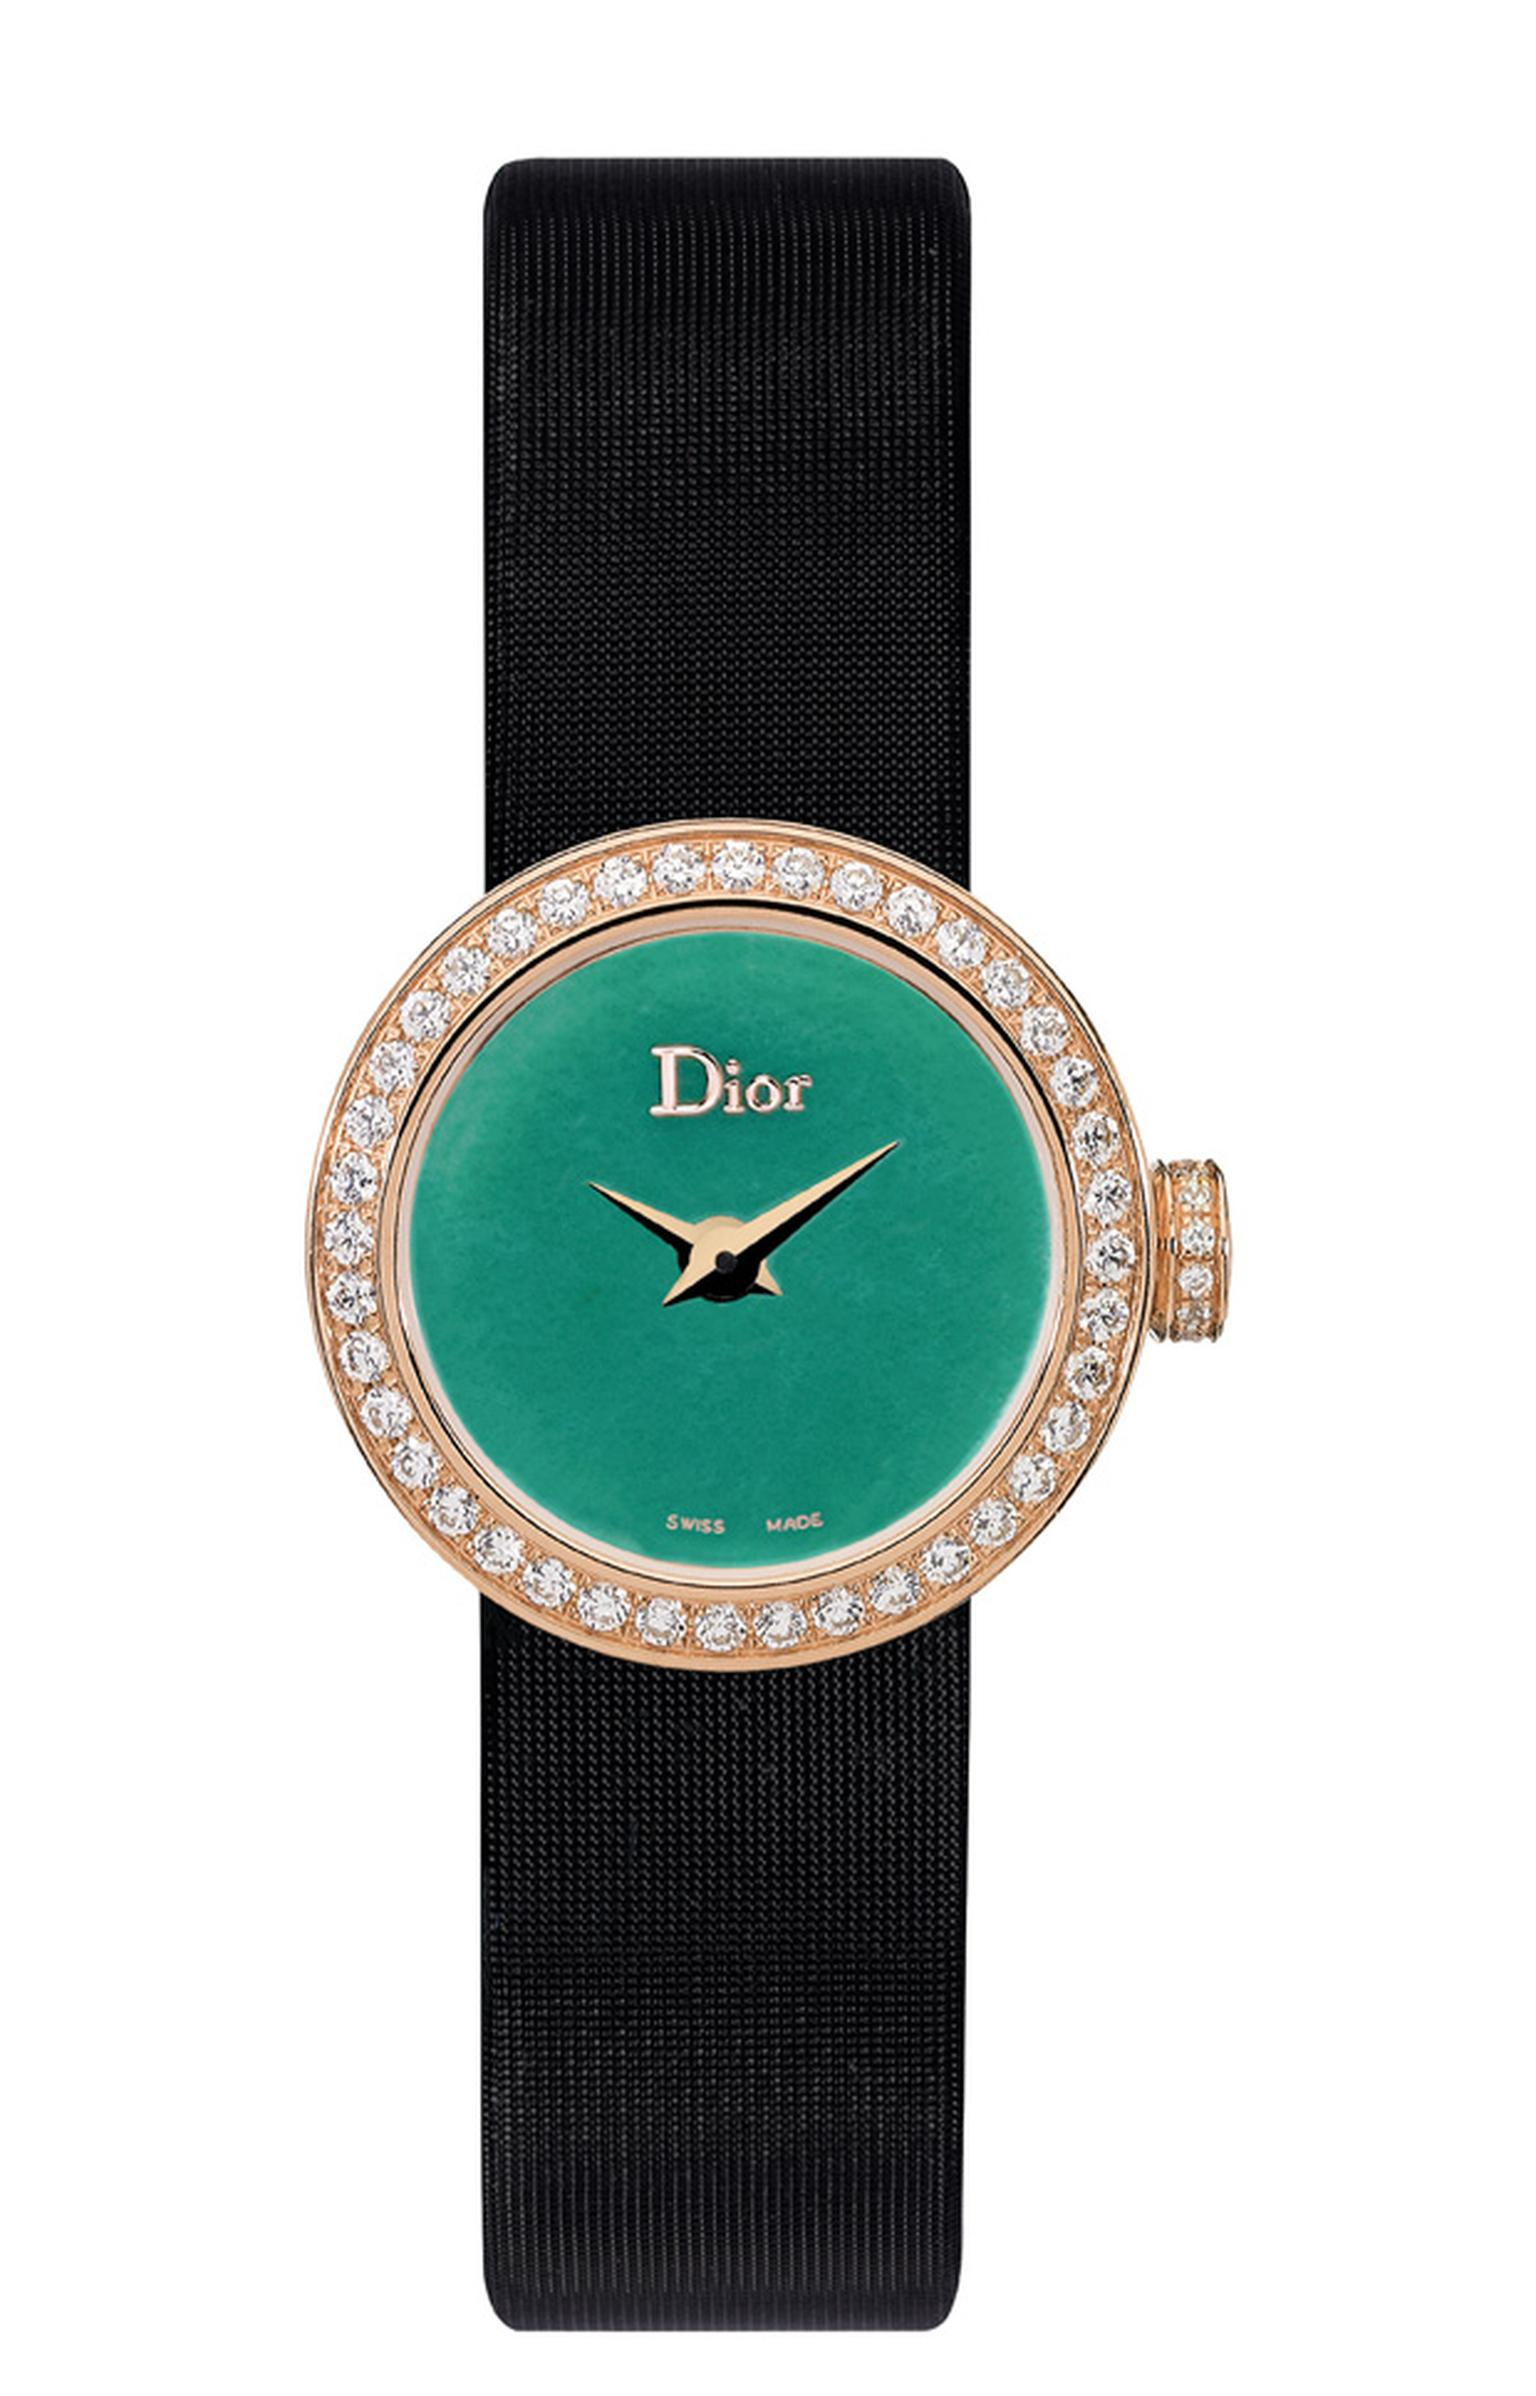 La Mini D de Dior watch with jade dial